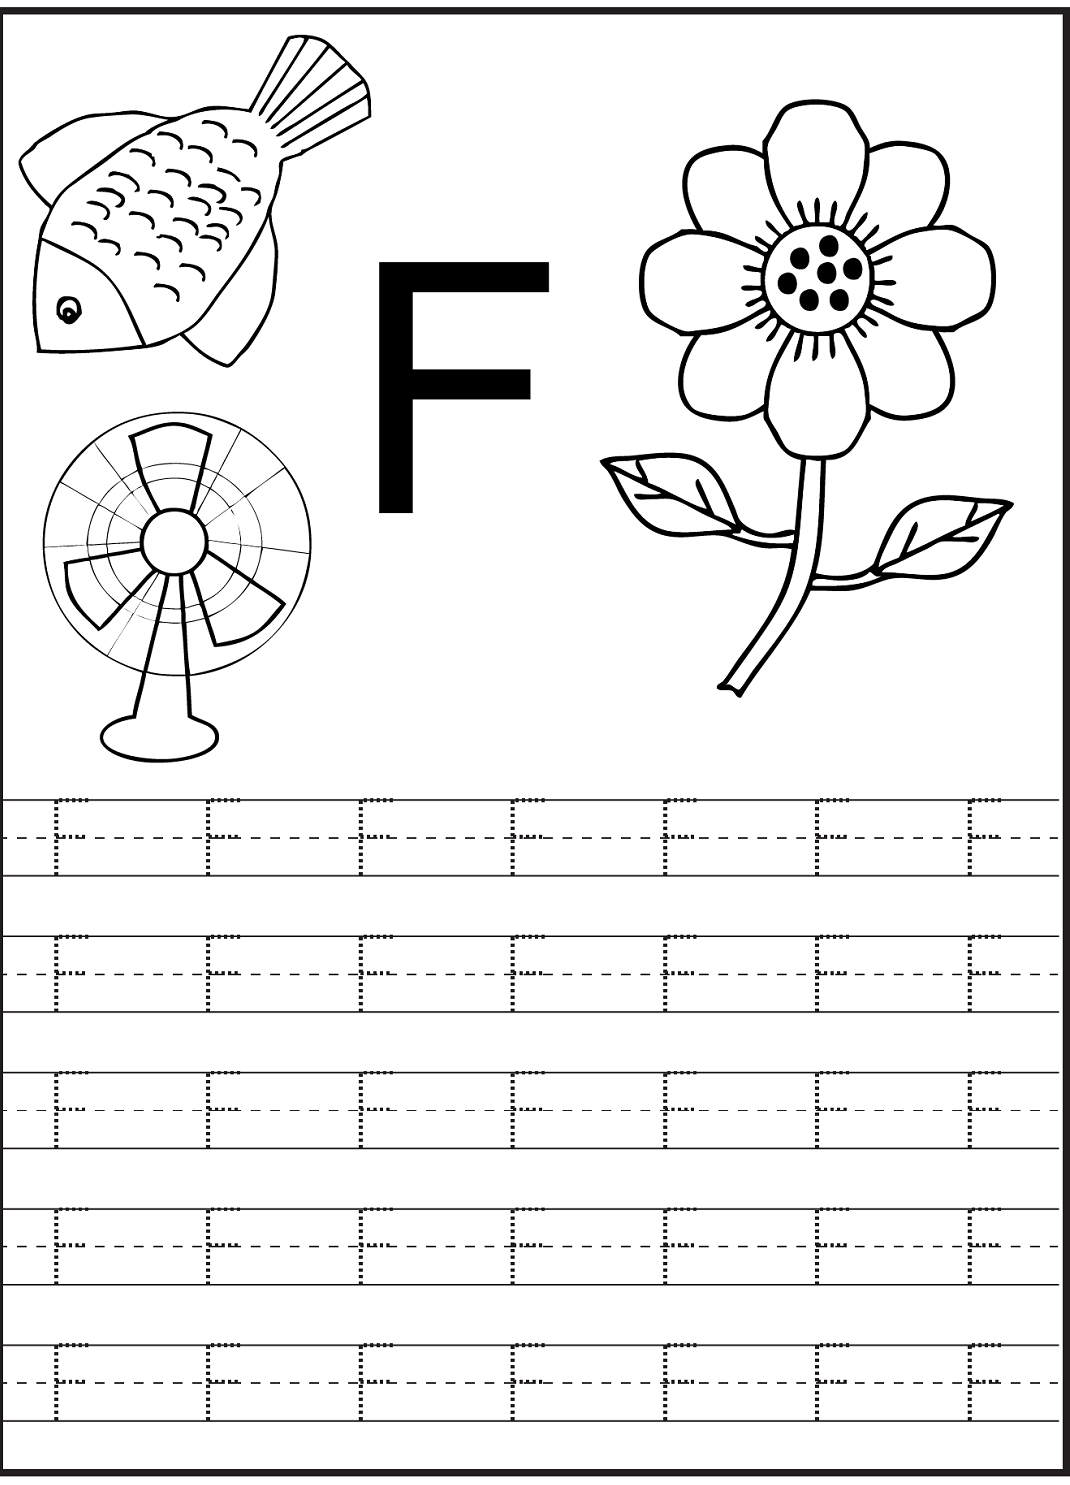 worksheet Preschool Learning Worksheets letter f worksheet for preschool and kindergarten activity shelter give our beloved kids these fun this will help them learning writing r